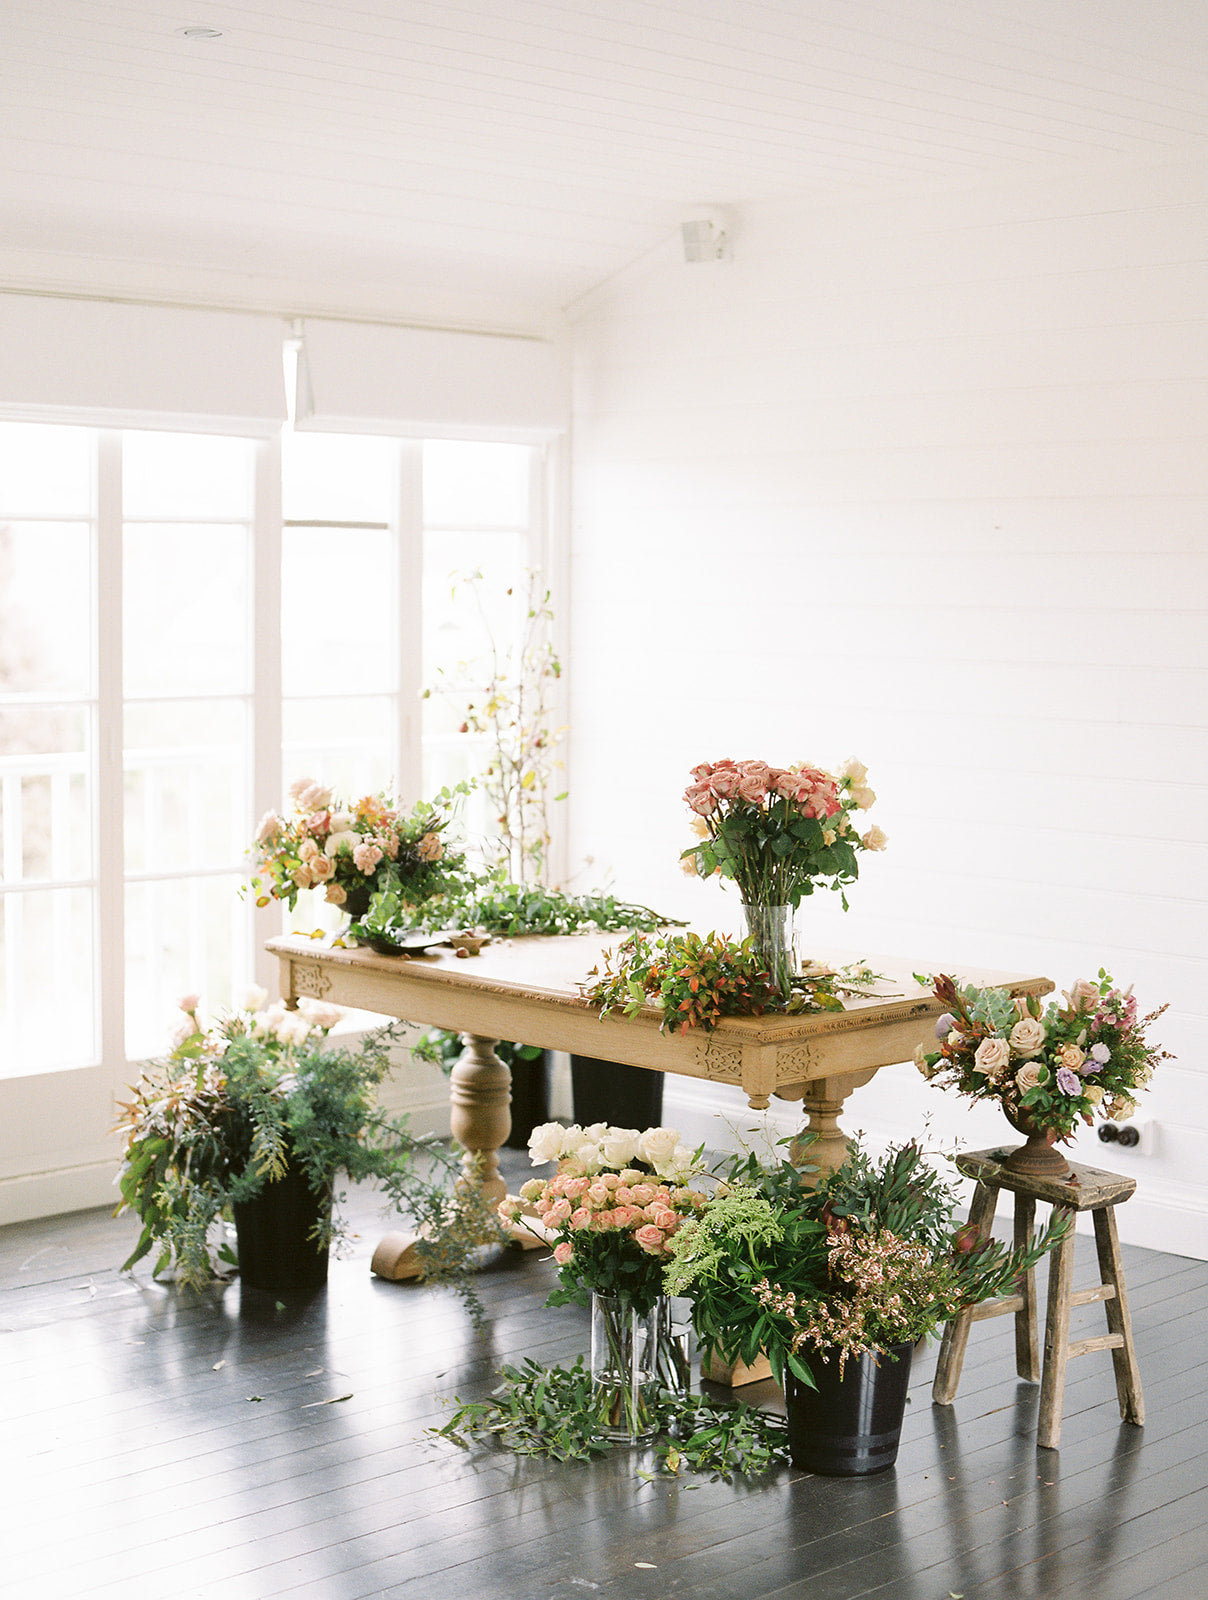 Flower arrangements in garden and romantic styling beautifully arranged on a table by Gathered Floral